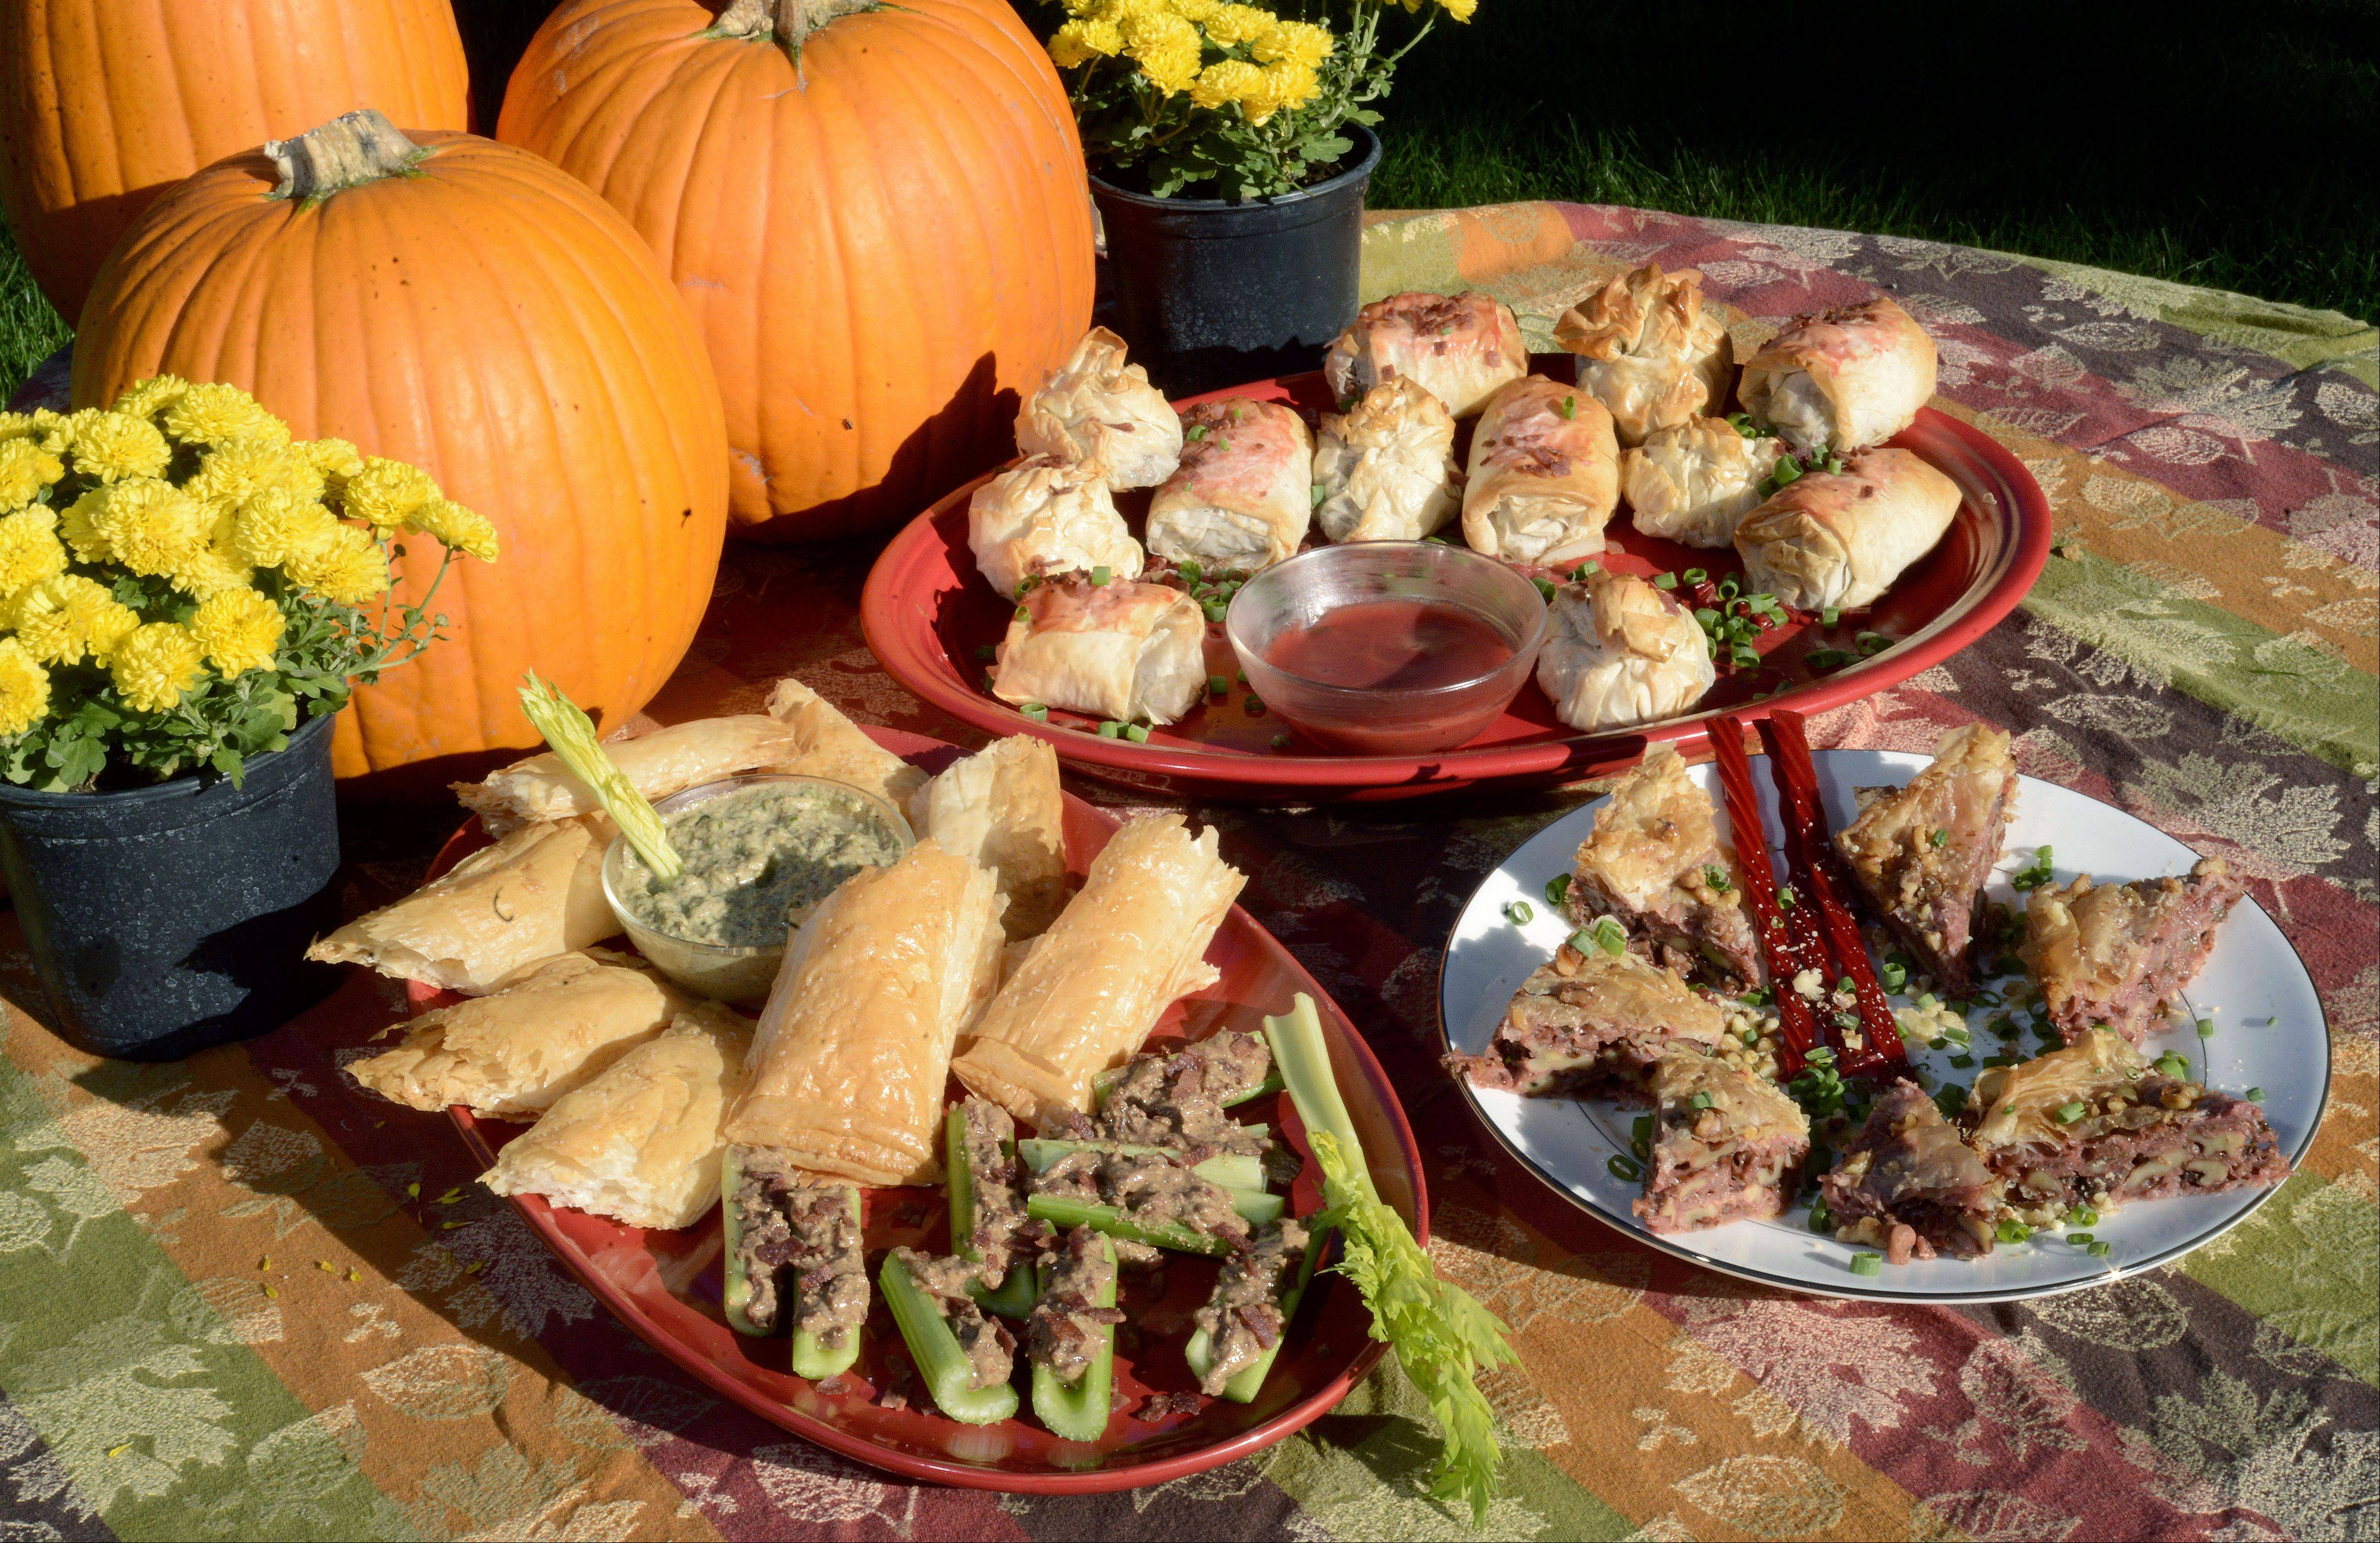 Dan Rich of Elgin created a party foods buffet featuring almond butter and bacon-stuffed celery boats, phyllo bombs, beef Wellington with almond butter pate, and savory baklava.